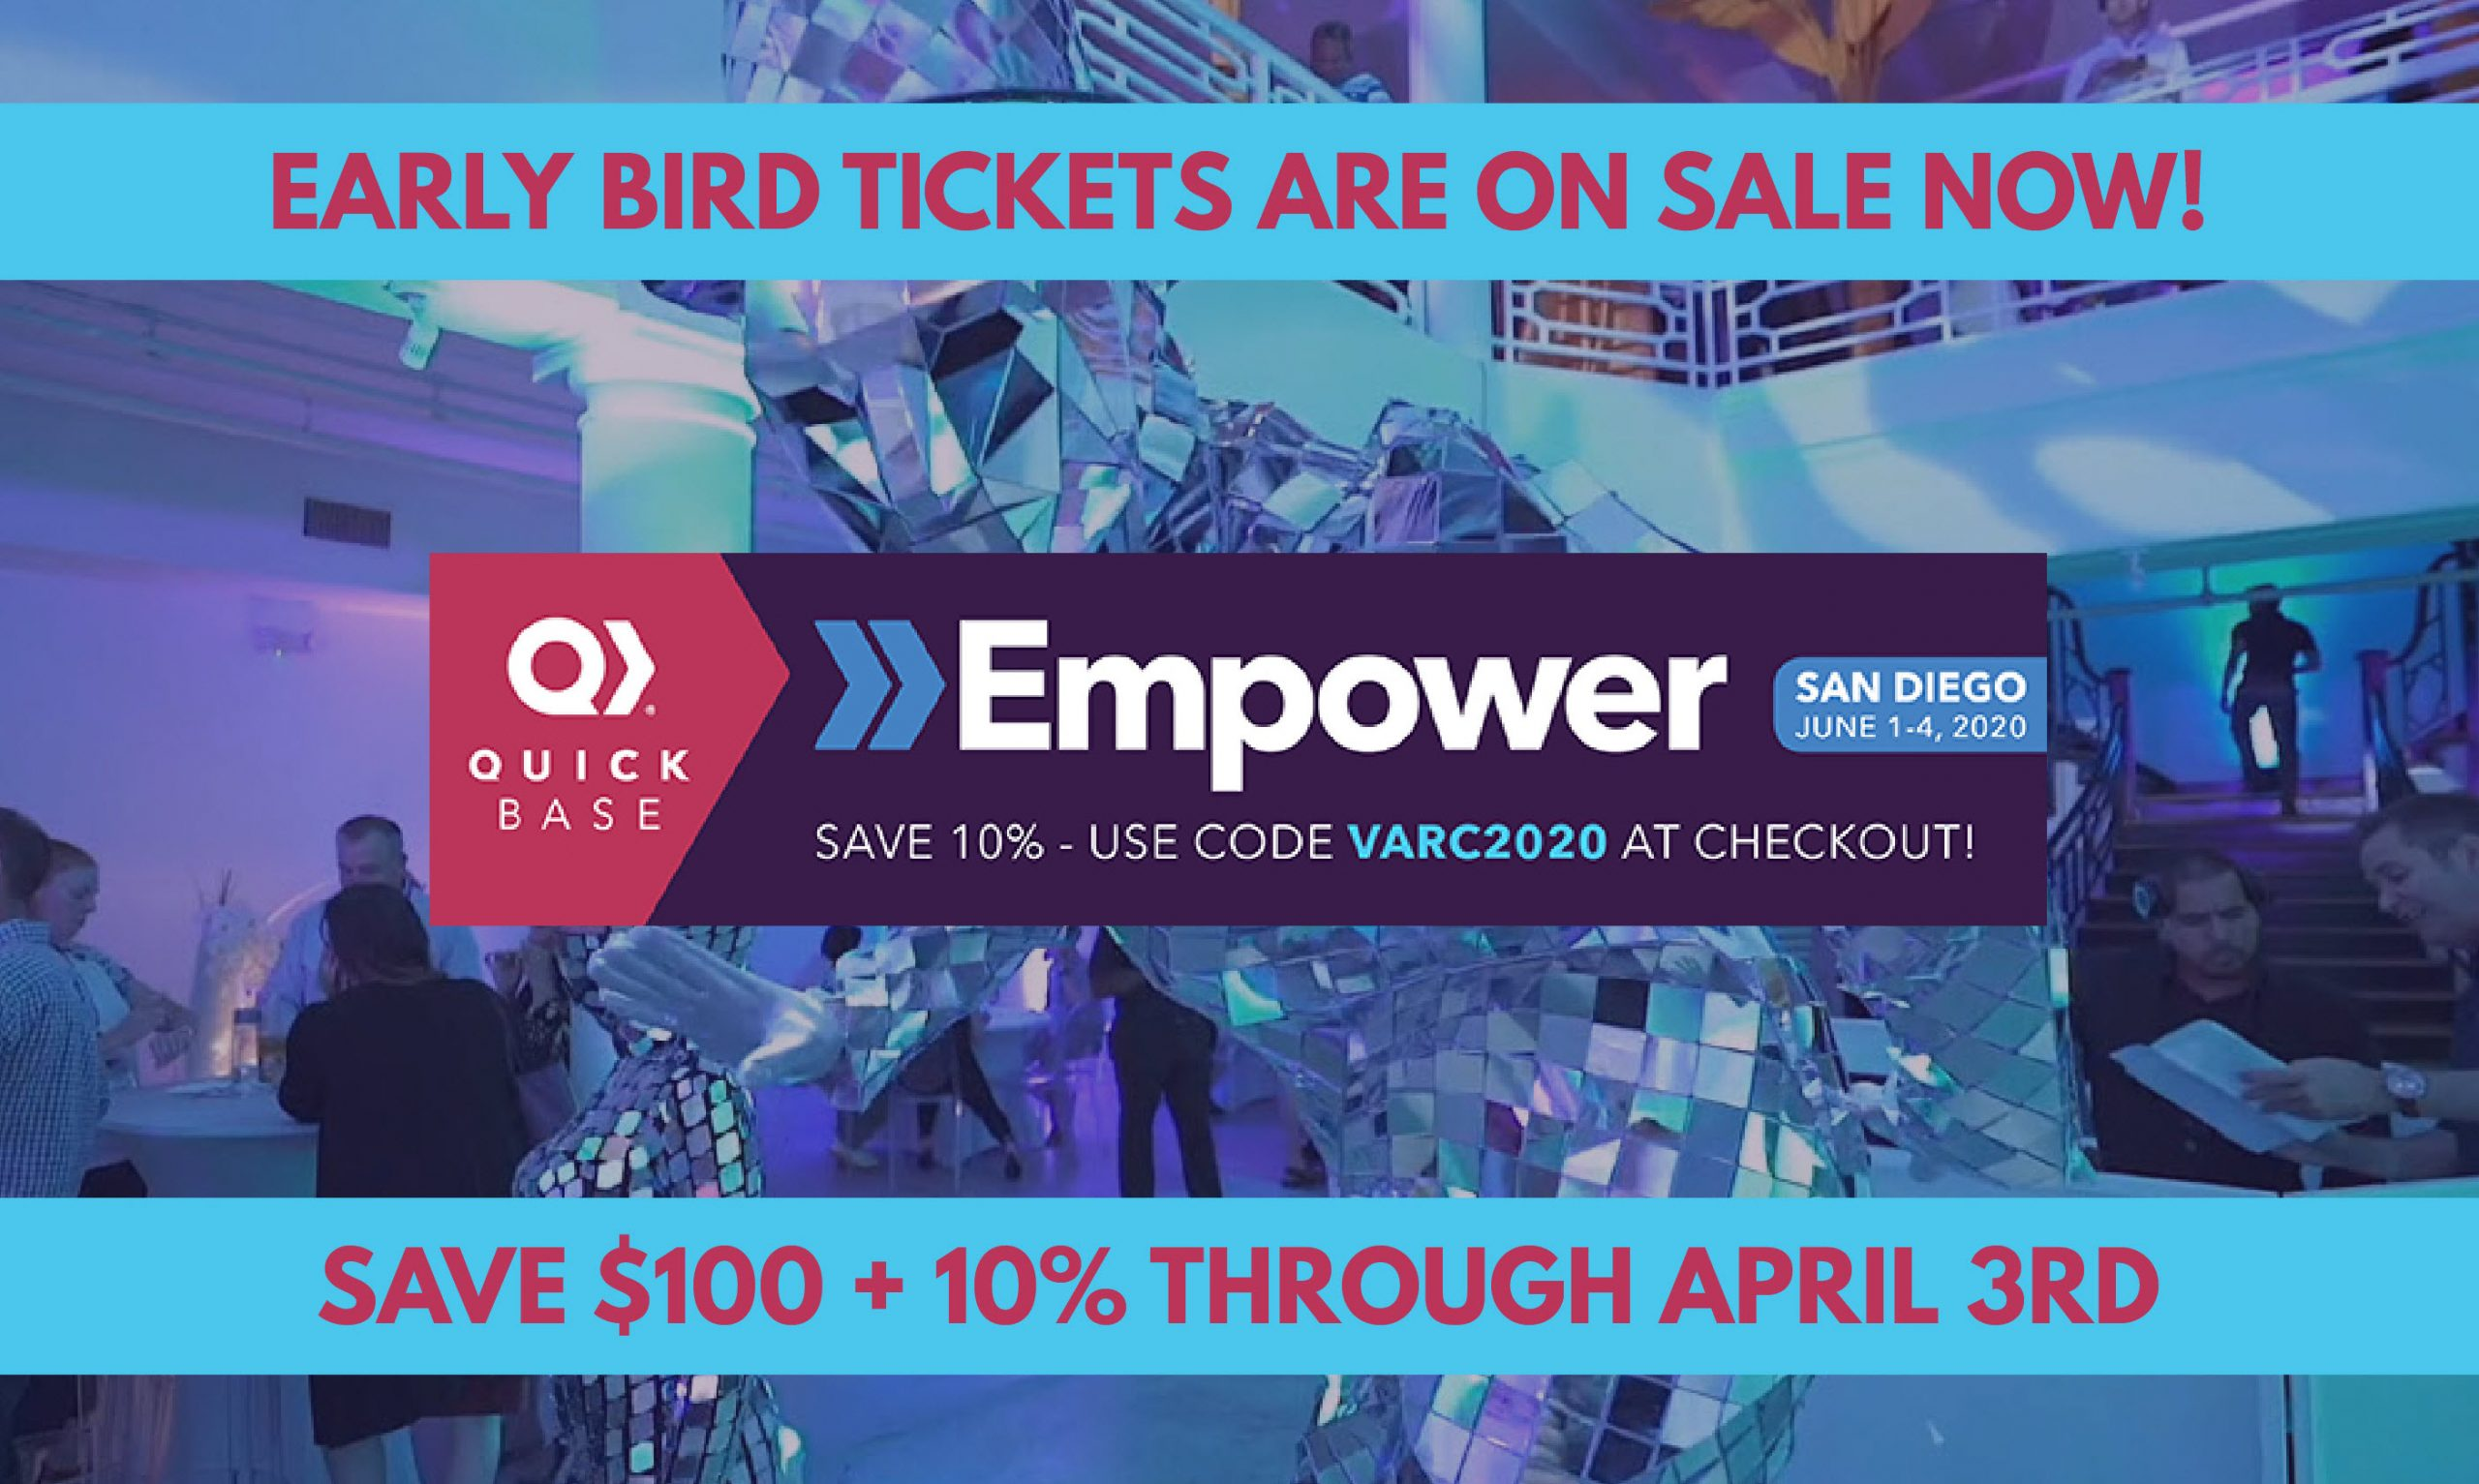 Quick Base Empower Early Bird Sale